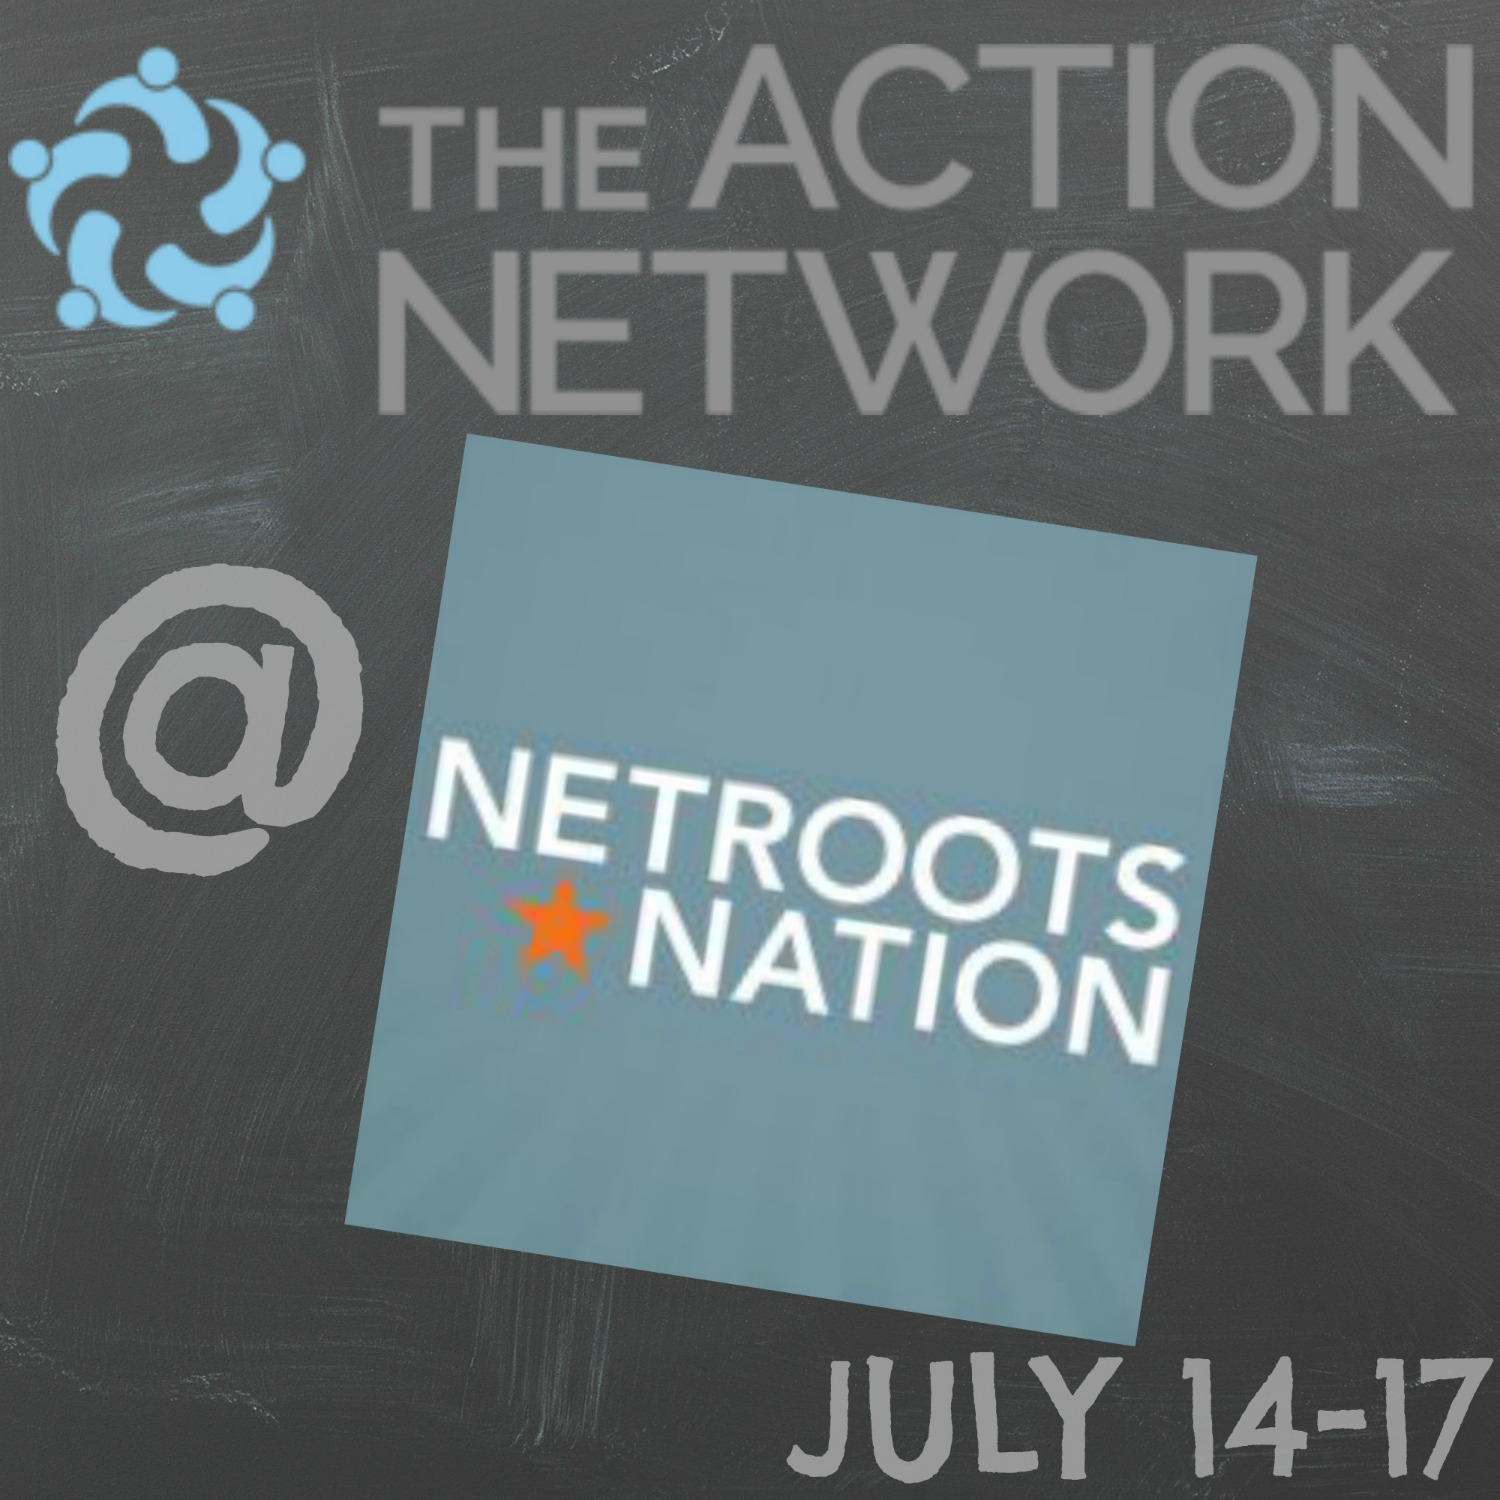 Networkrootsgraphic